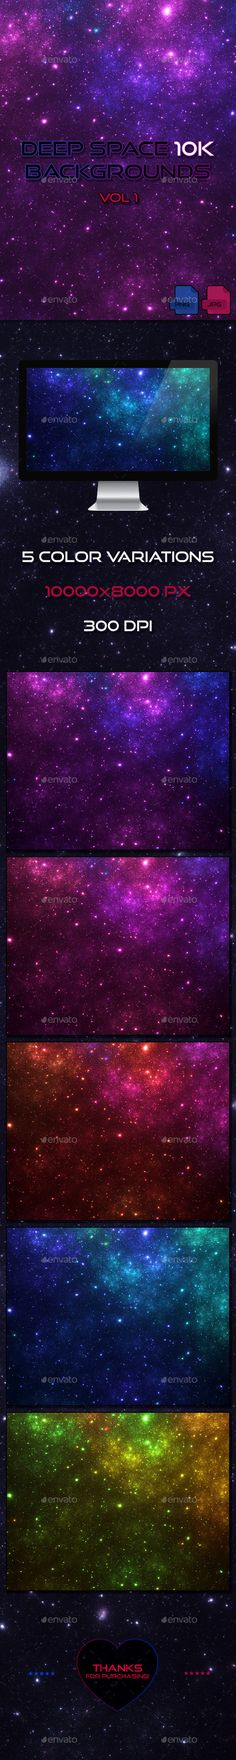 Deep Space 10K Backgrounds Vol1 by Dreamlancer 5 high-resolution deep space backgrounds in 10k resolution for your creative projects.Contains:5 Transparent PNG 5 JPG backgrounds